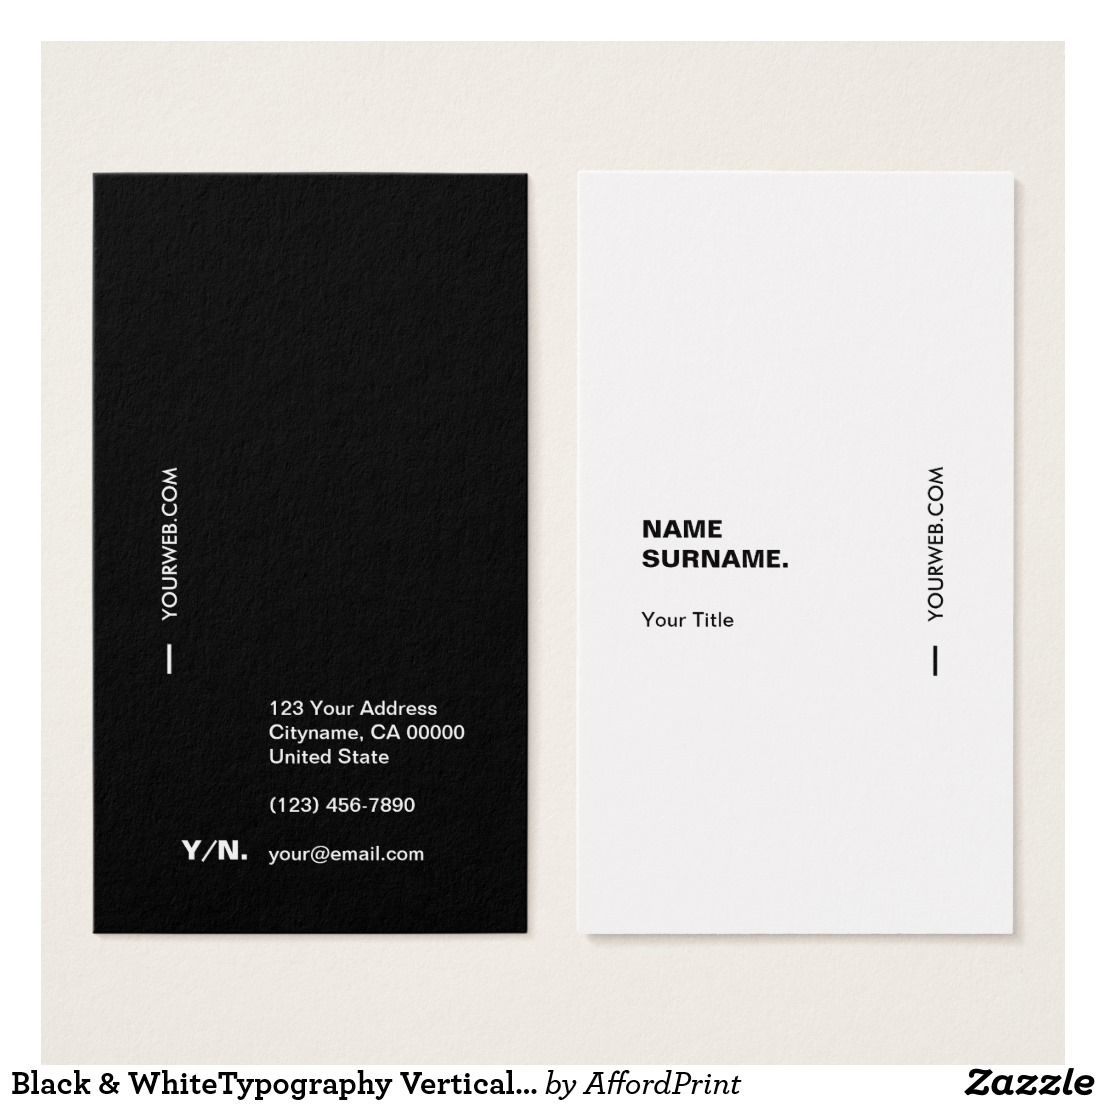 Black Whitetypography Vertical Business Card Zazzle Com Business Cards Layout Vertical Business Cards Minimalist Business Cards